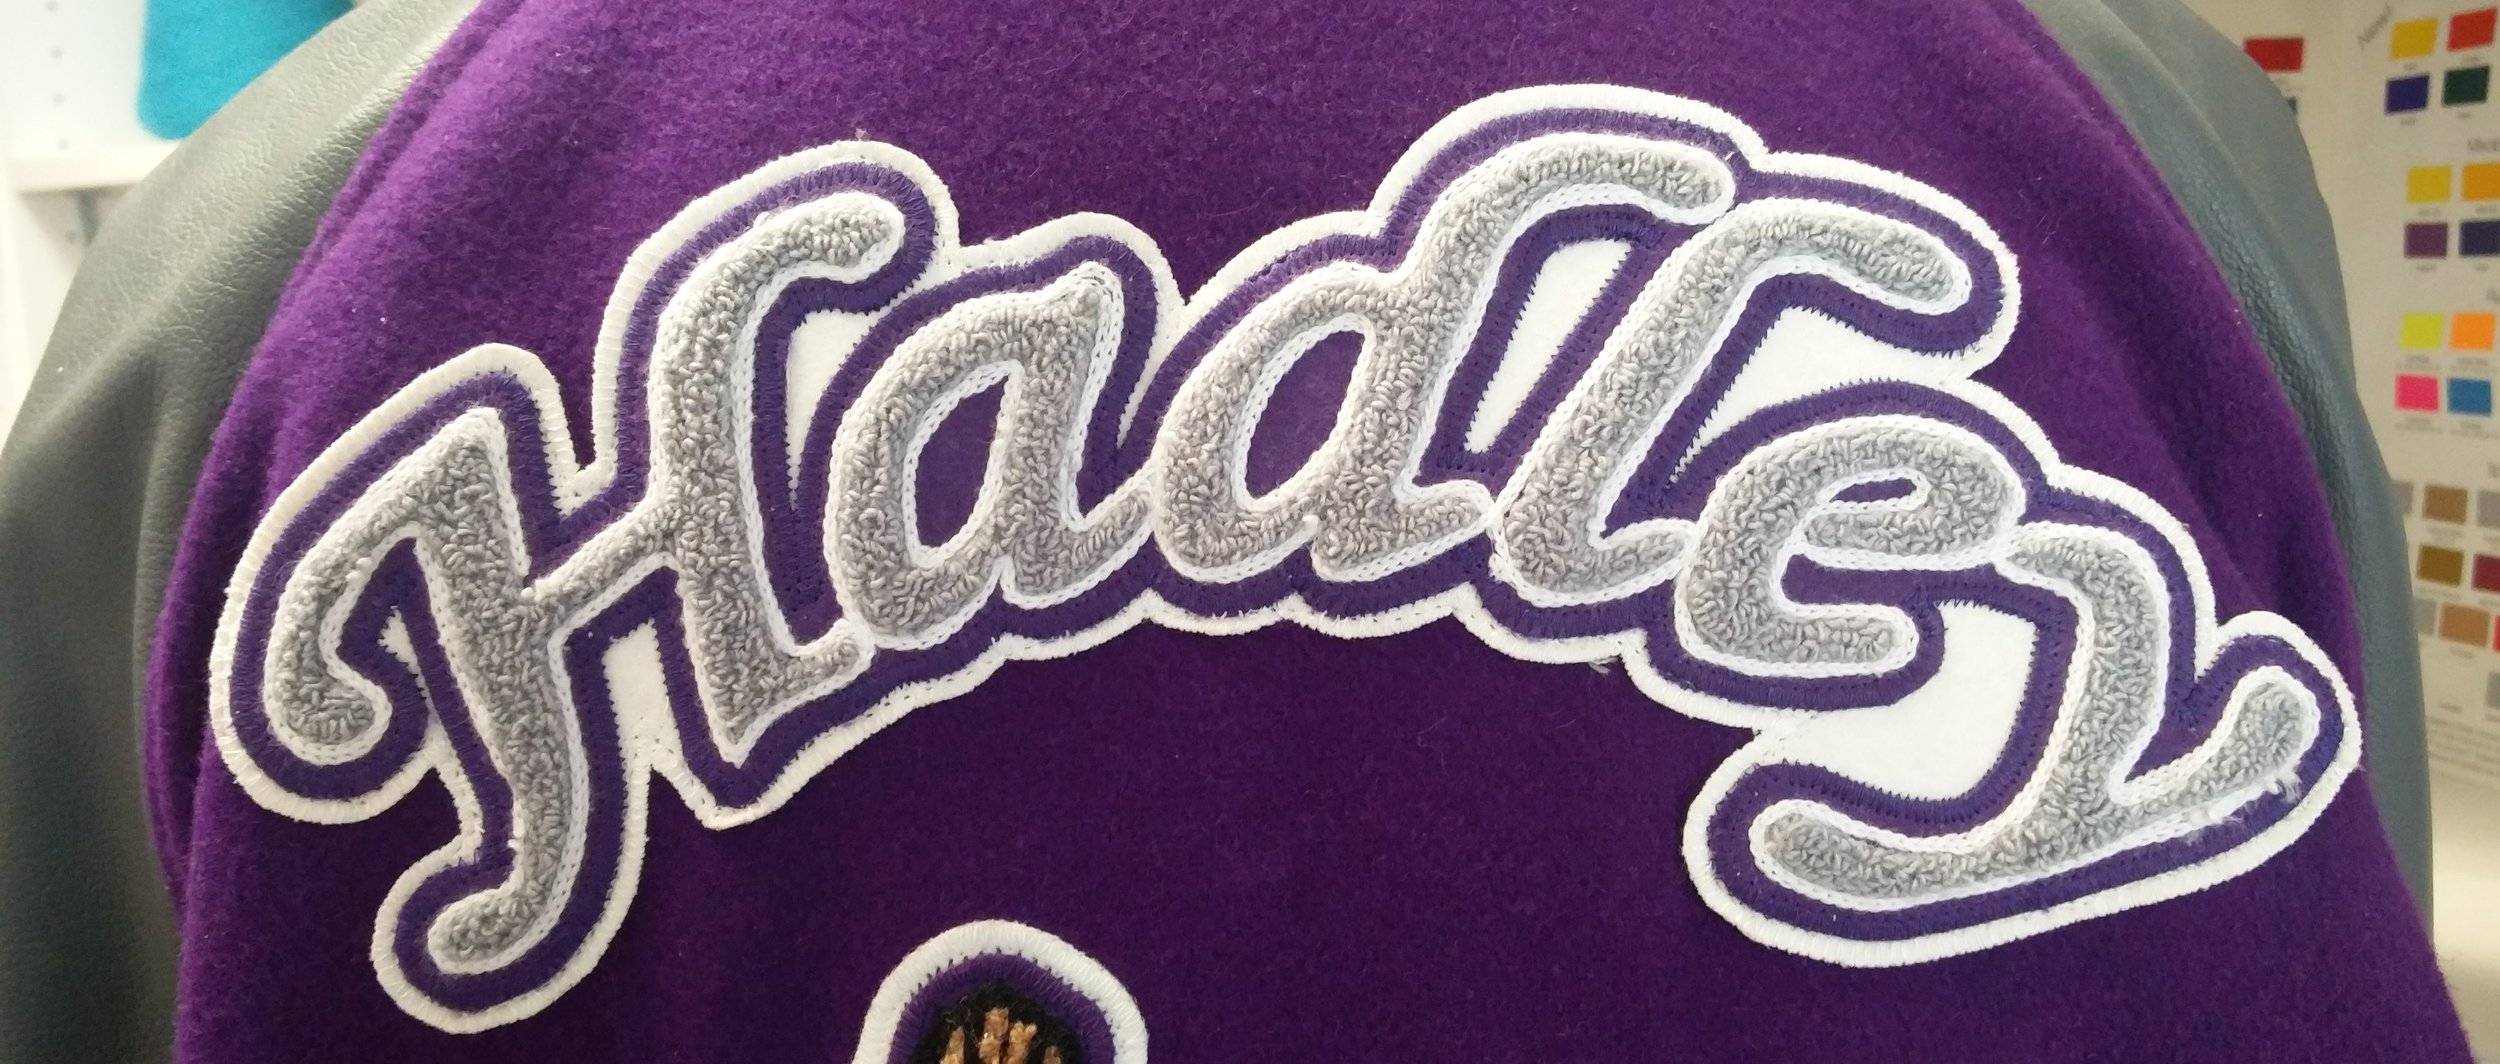 Last Name - Customers pick from a variety of font samples. This patch is placed on the back of the jacket.